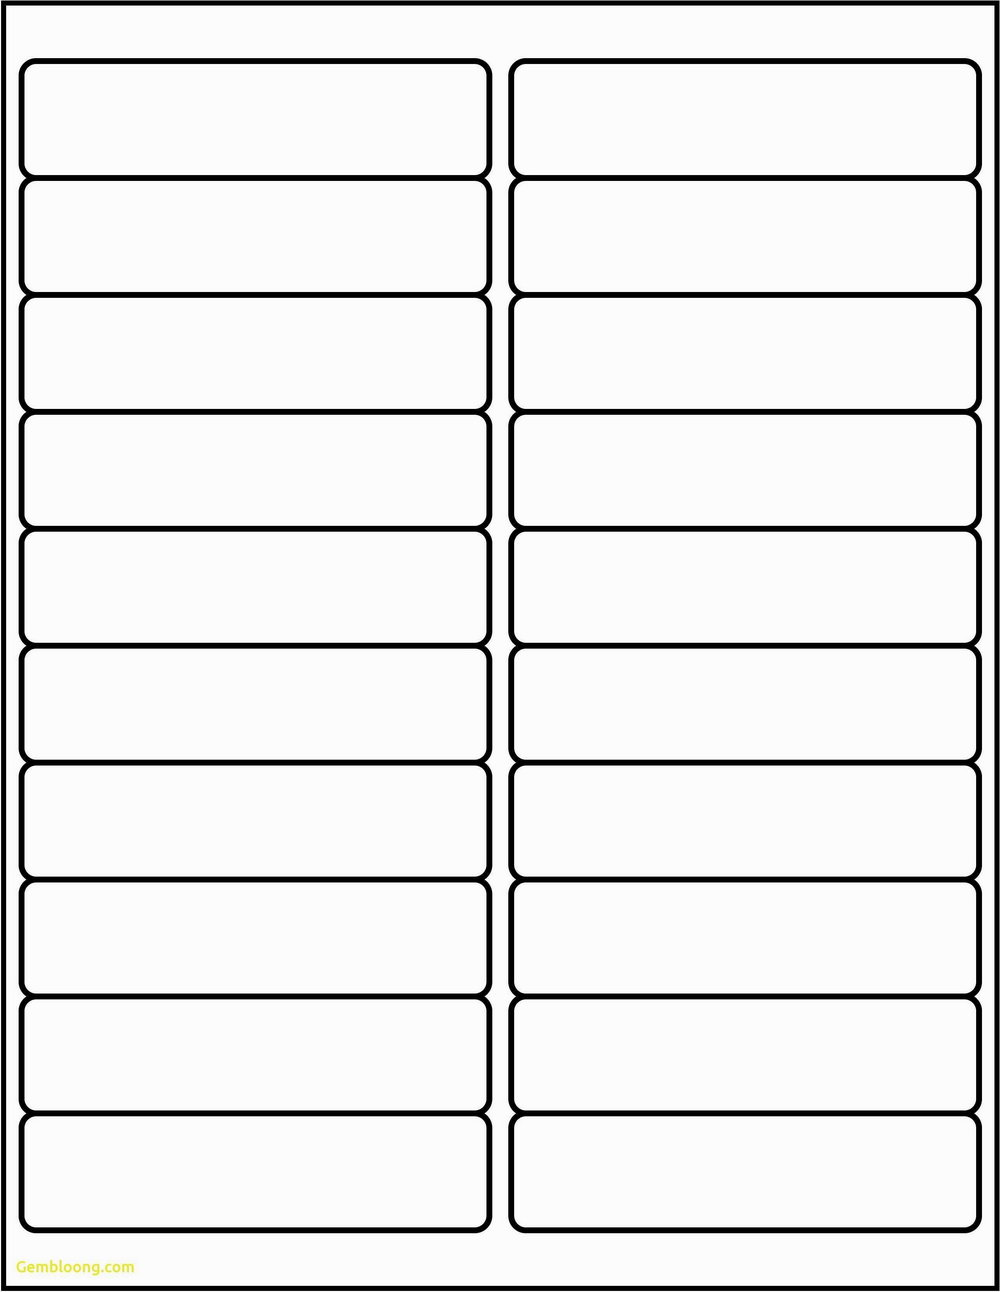 Avery Round Label Templates 24 Per Sheet